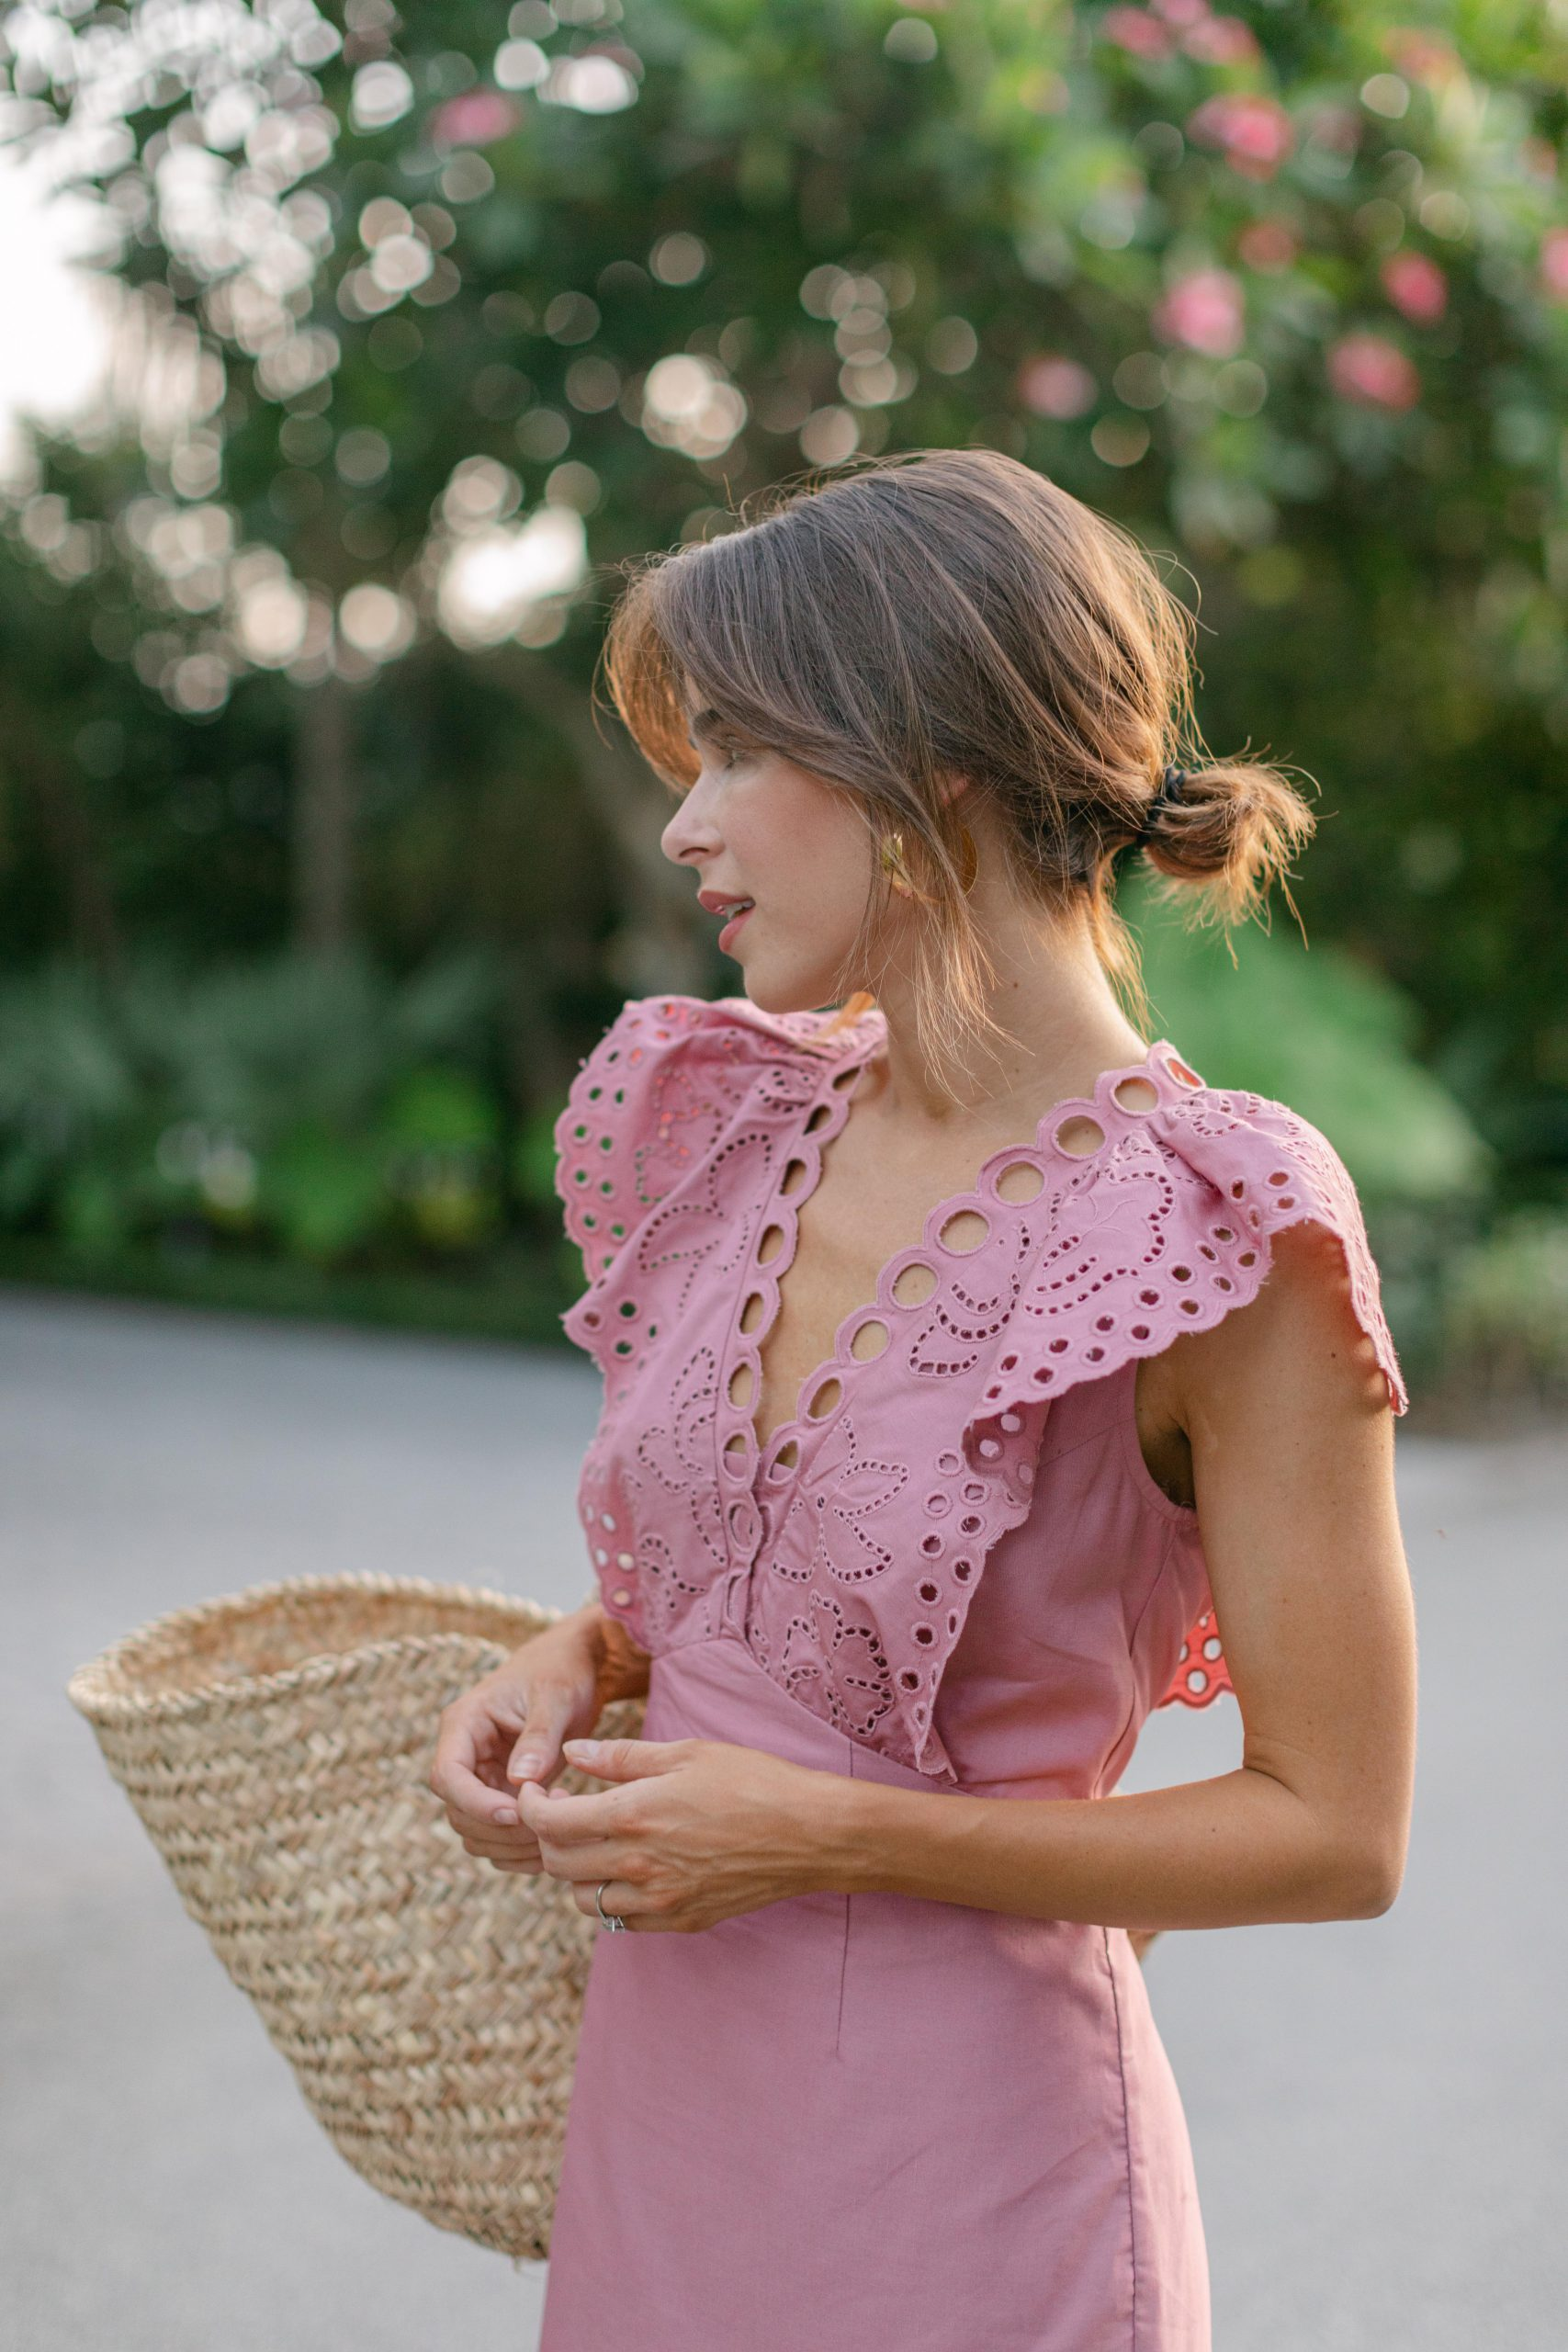 Cotton Pieces I Love for Summer by Fashion Blogger Stephanie Hill featured on The Style Bungalow